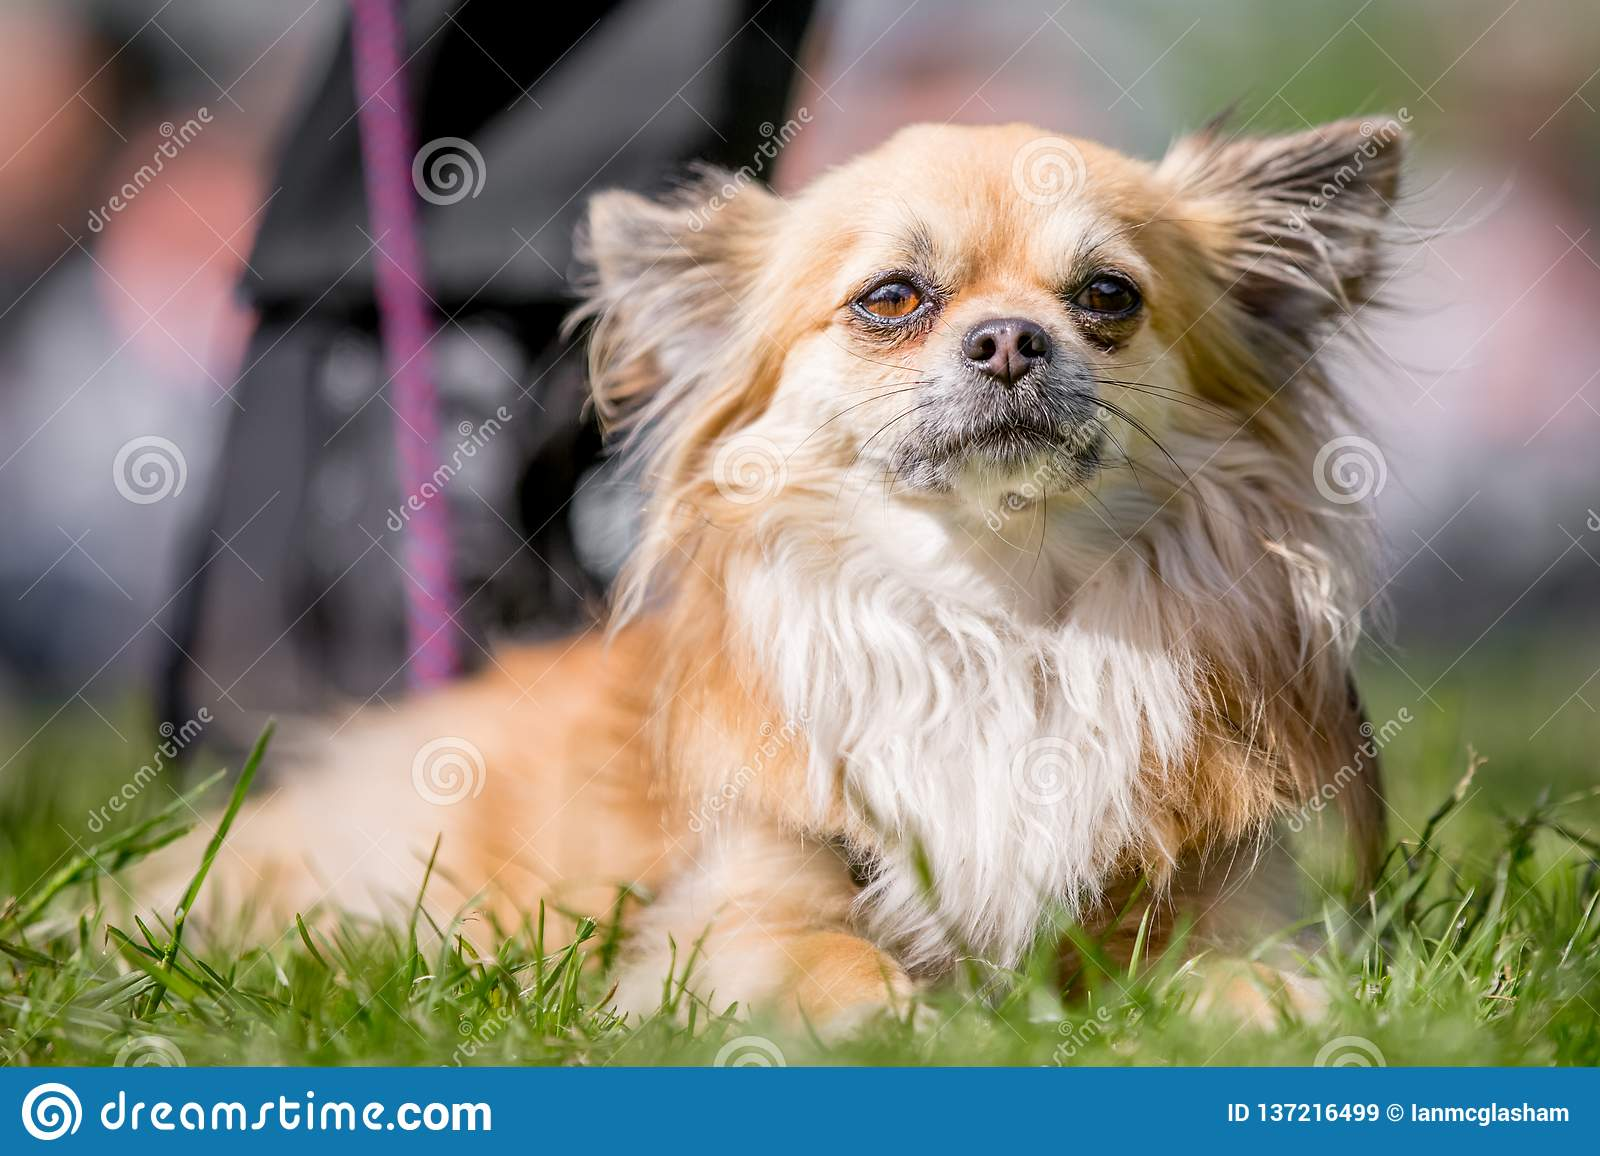 Long Fur Chihuahua Portrait With Big Ears And A Pink Tail